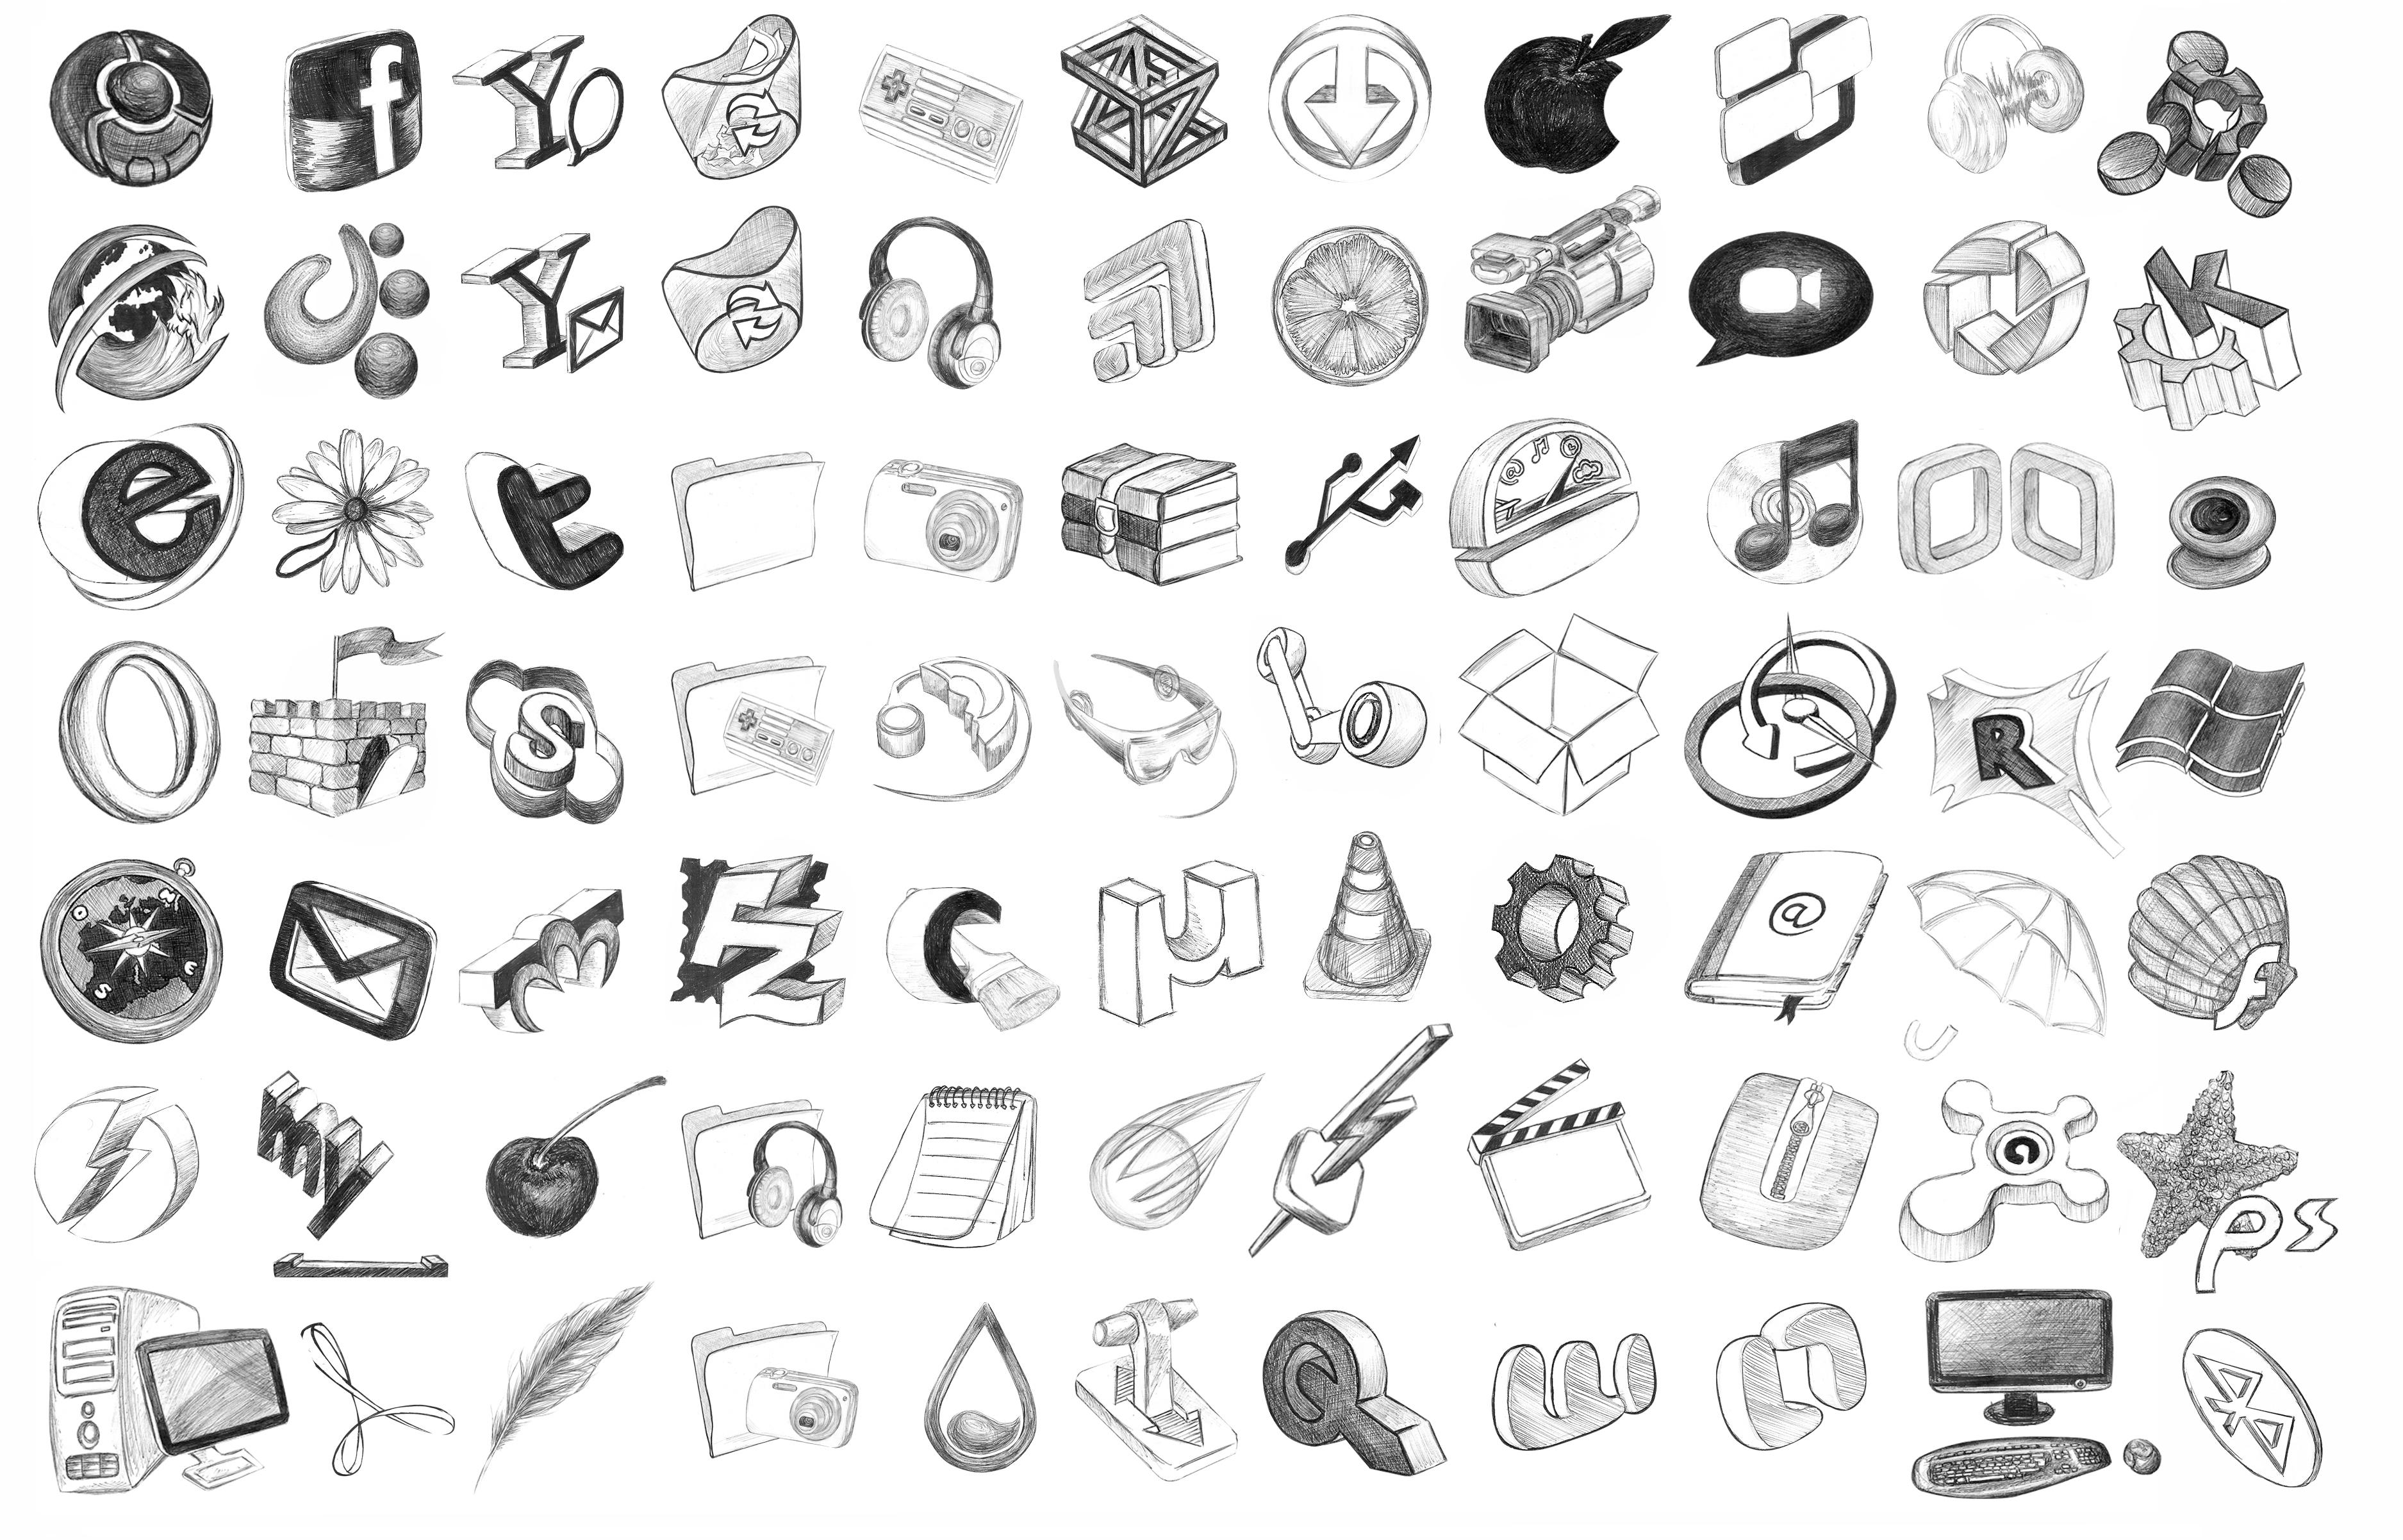 BBD ICONS Updated 27 08 2011 by LeBlancK